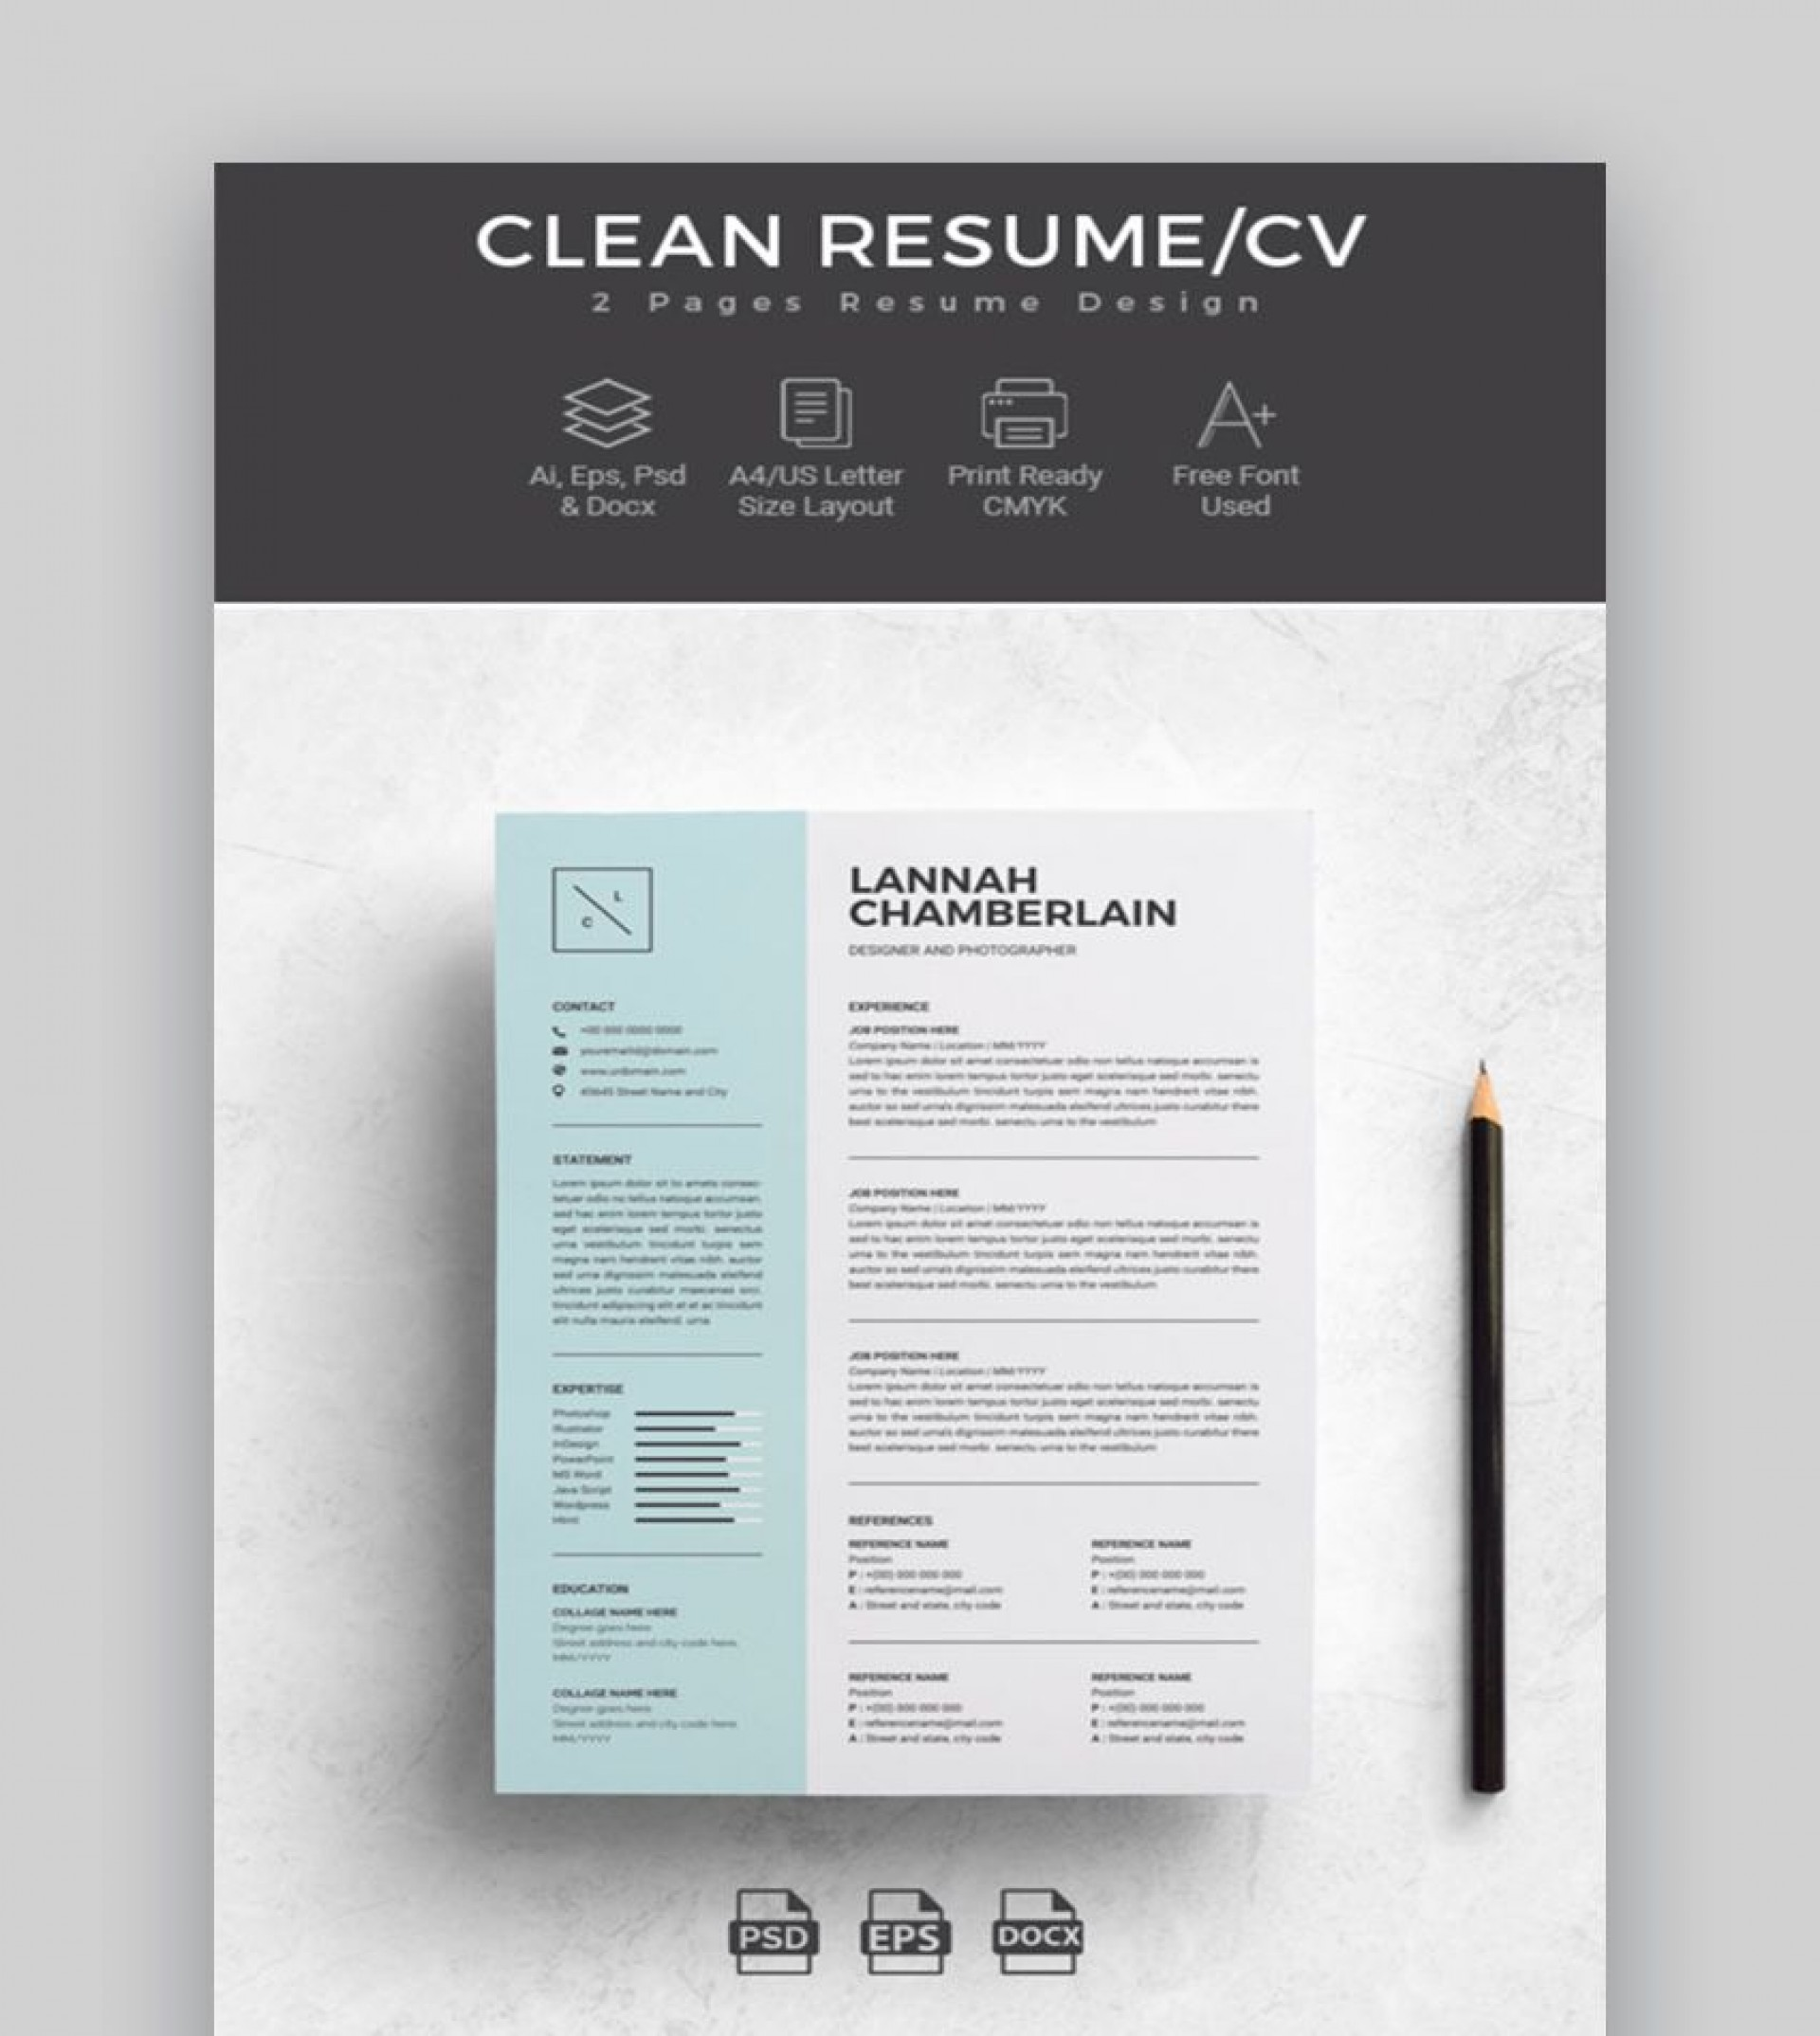 001 Frightening Resume Template Free Word High Resolution  Download 2020 Cv1920